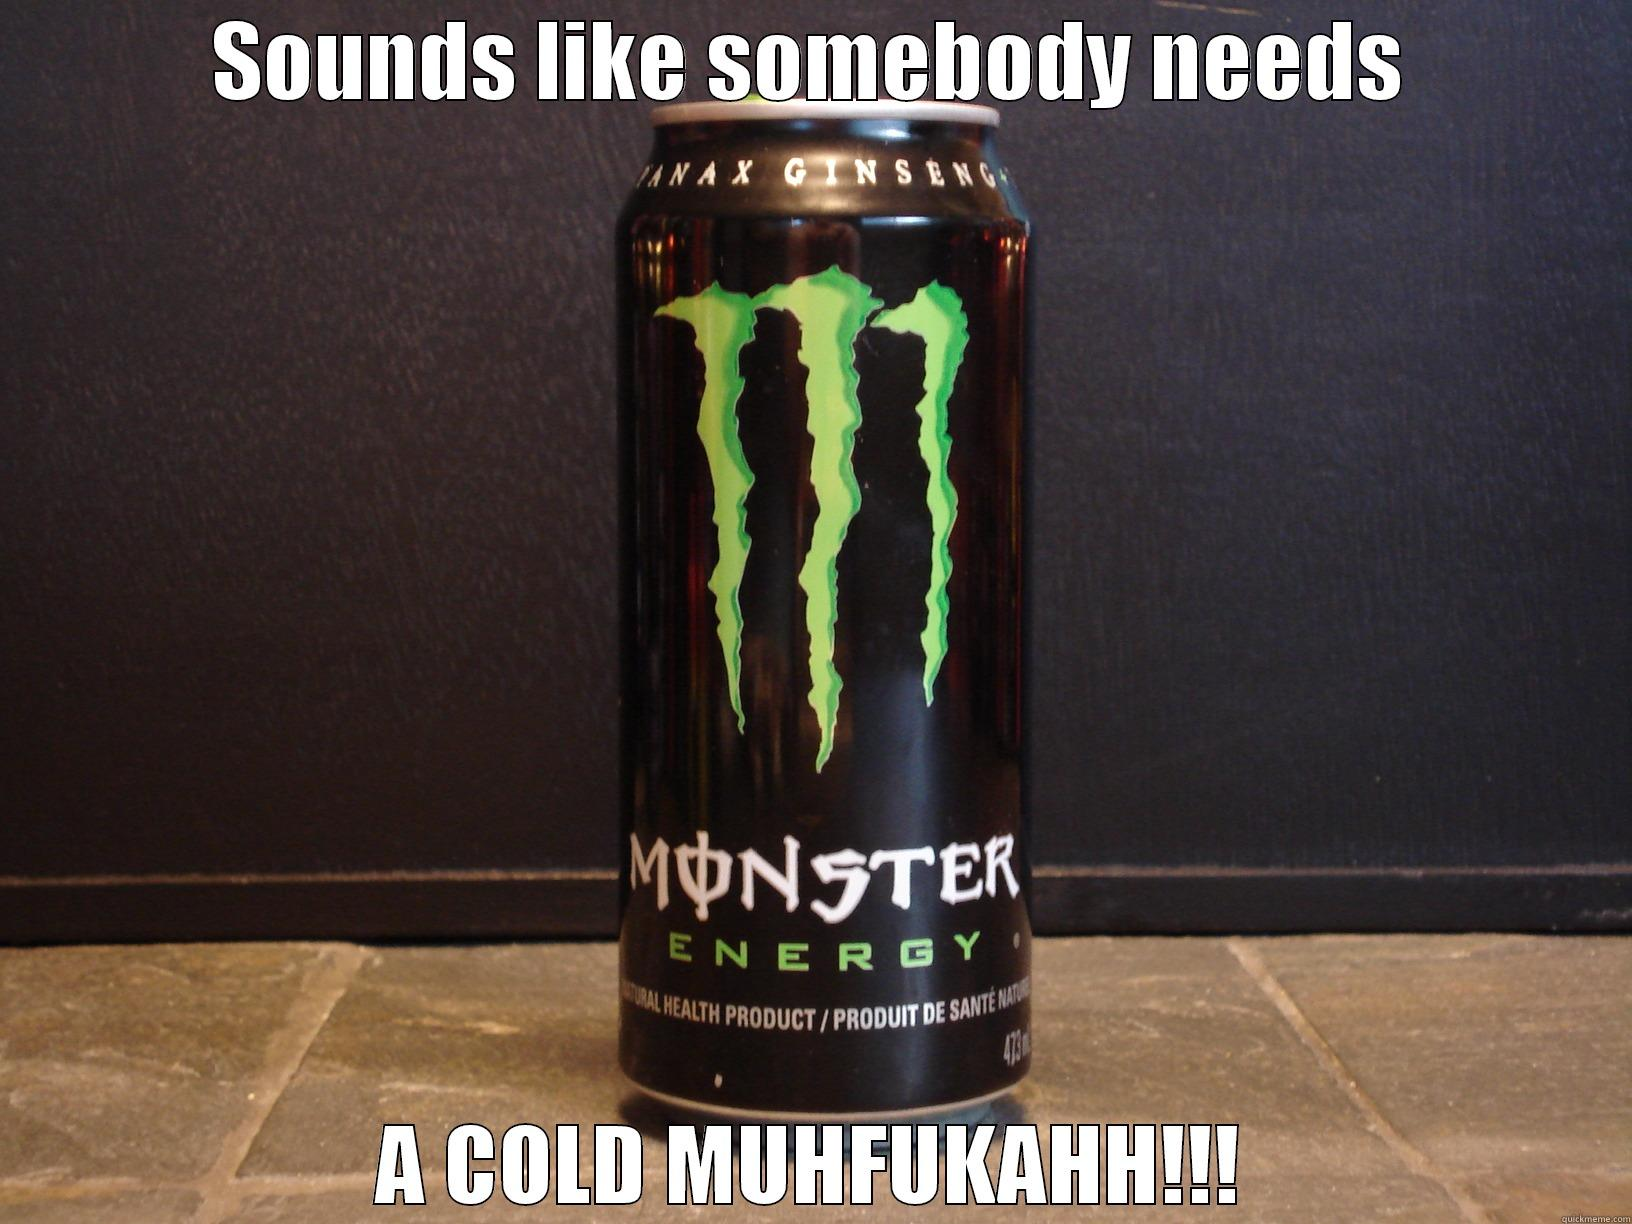 MONSTER ENERGY PUN - SOUNDS LIKE SOMEBODY NEEDS A COLD MUHFUKAHH!!! Misc